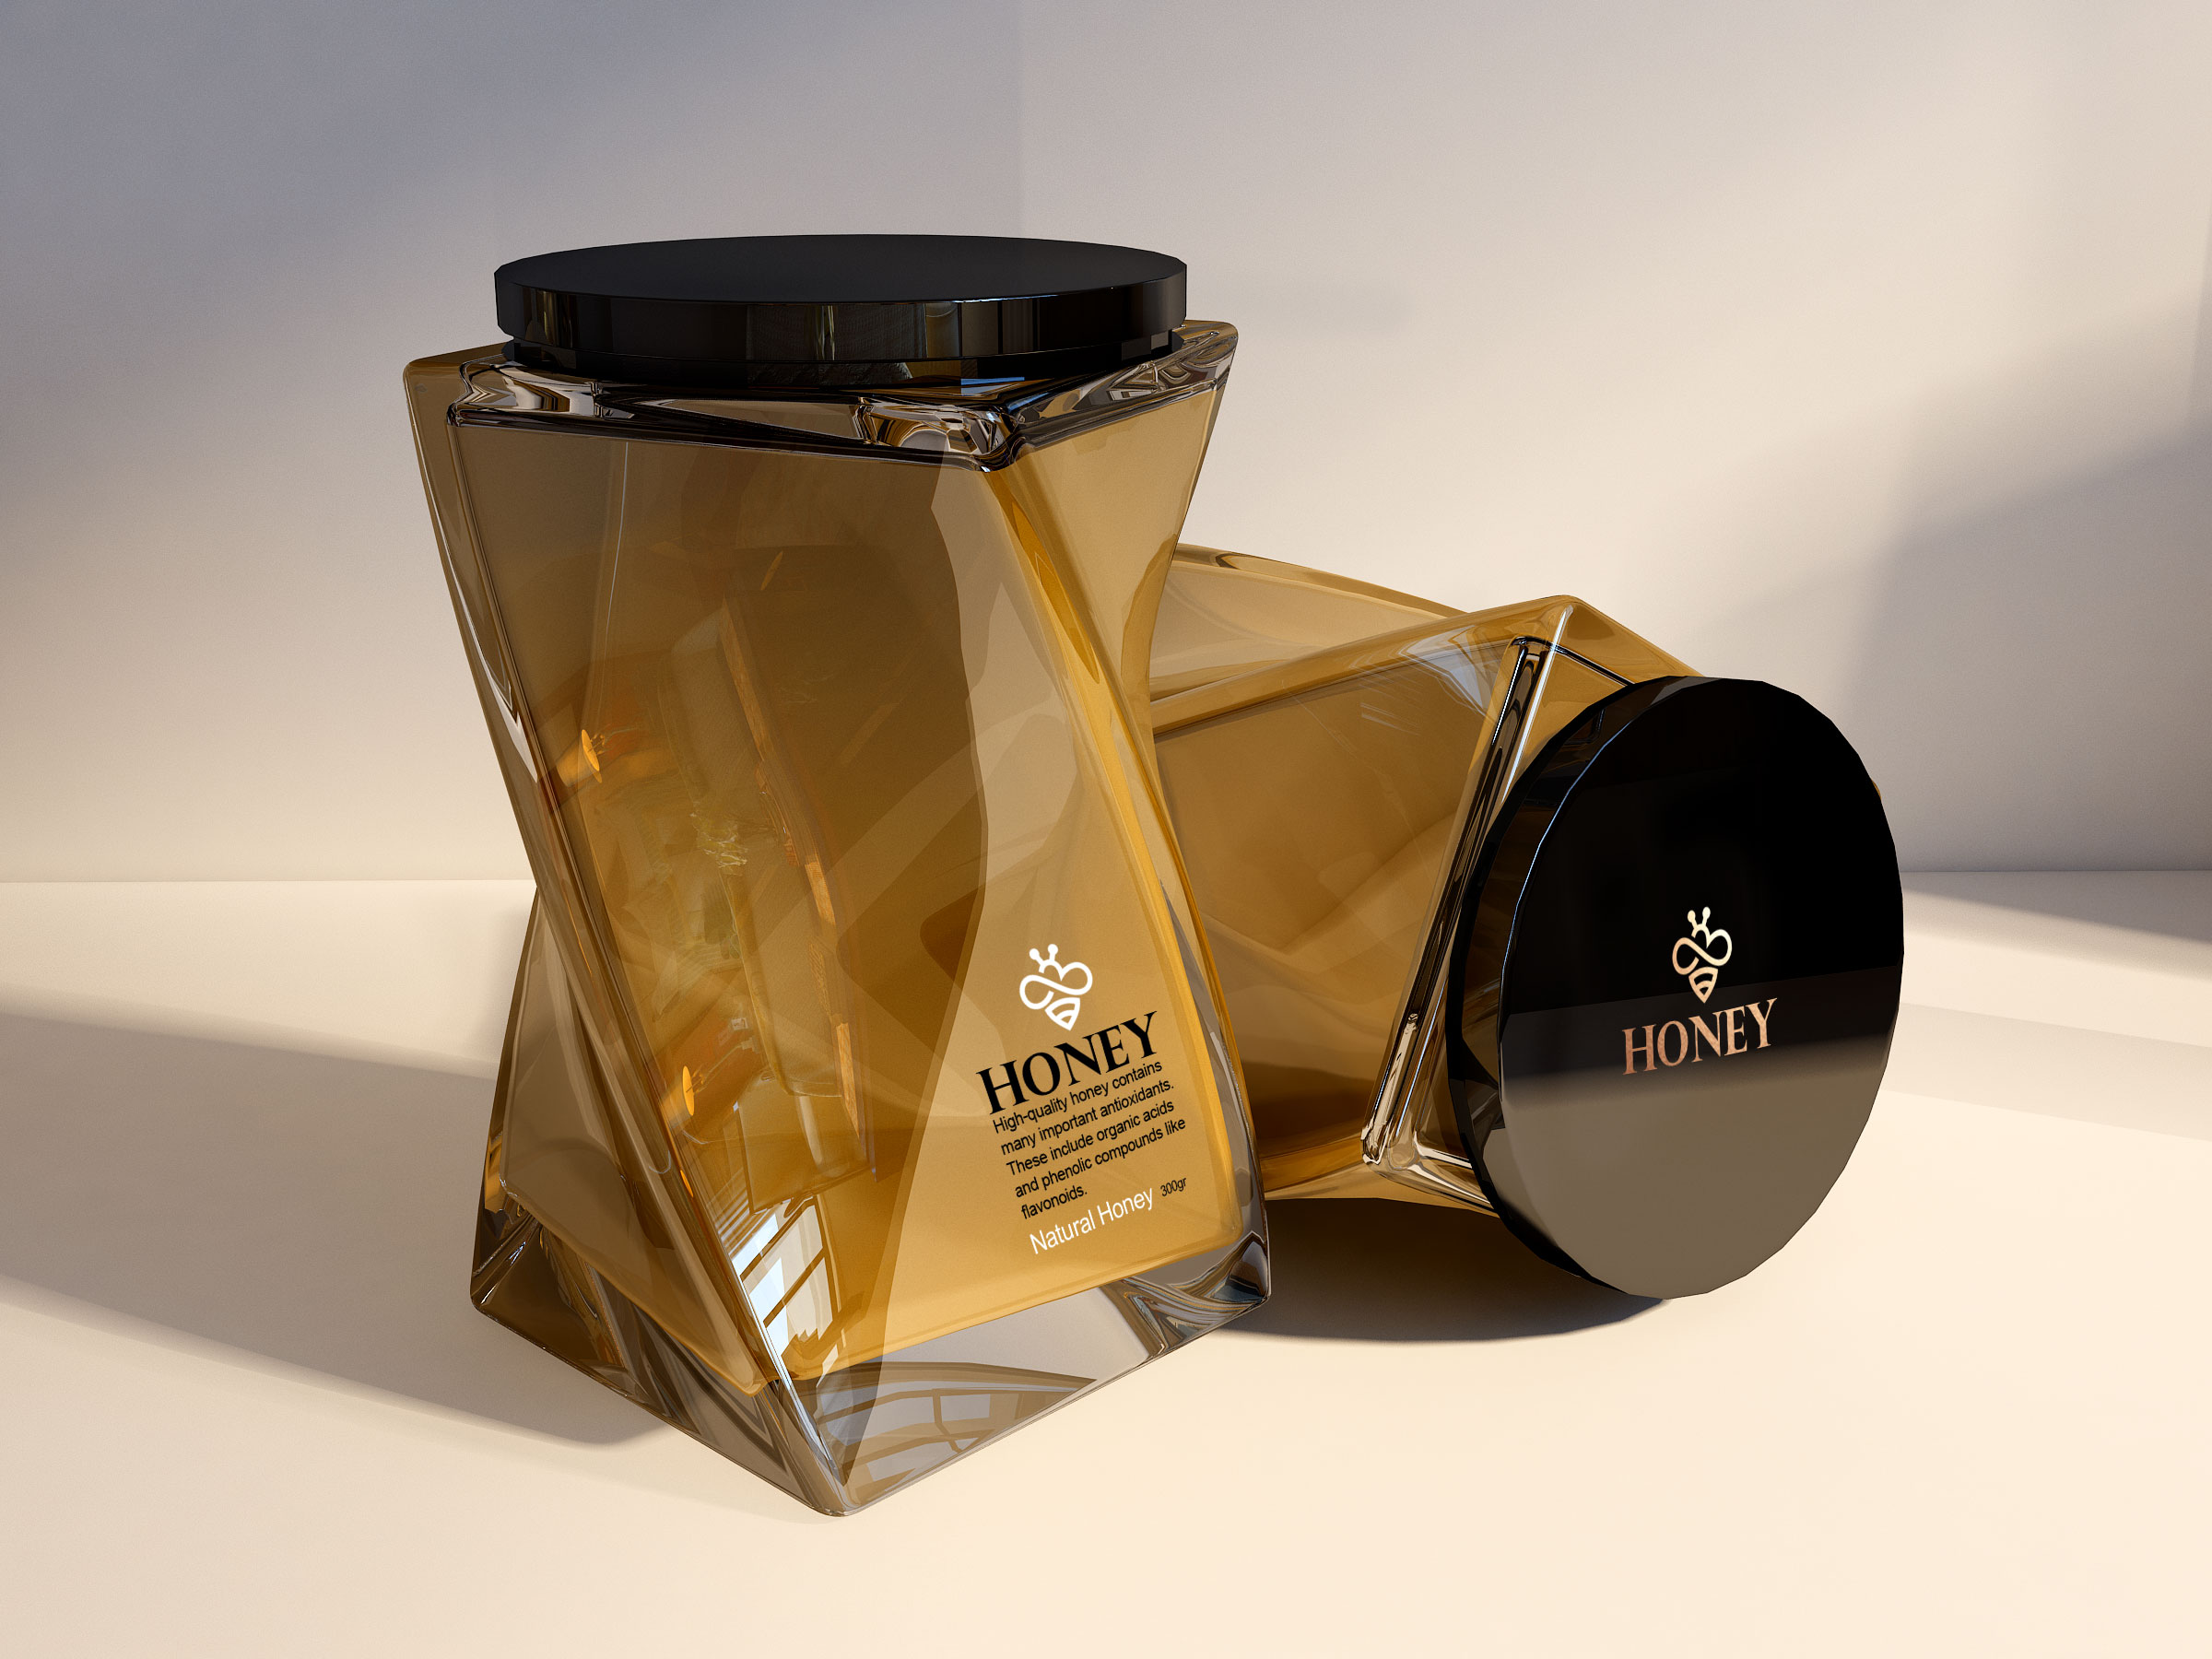 Taha Fakouri - Honey Packaging5.jpg